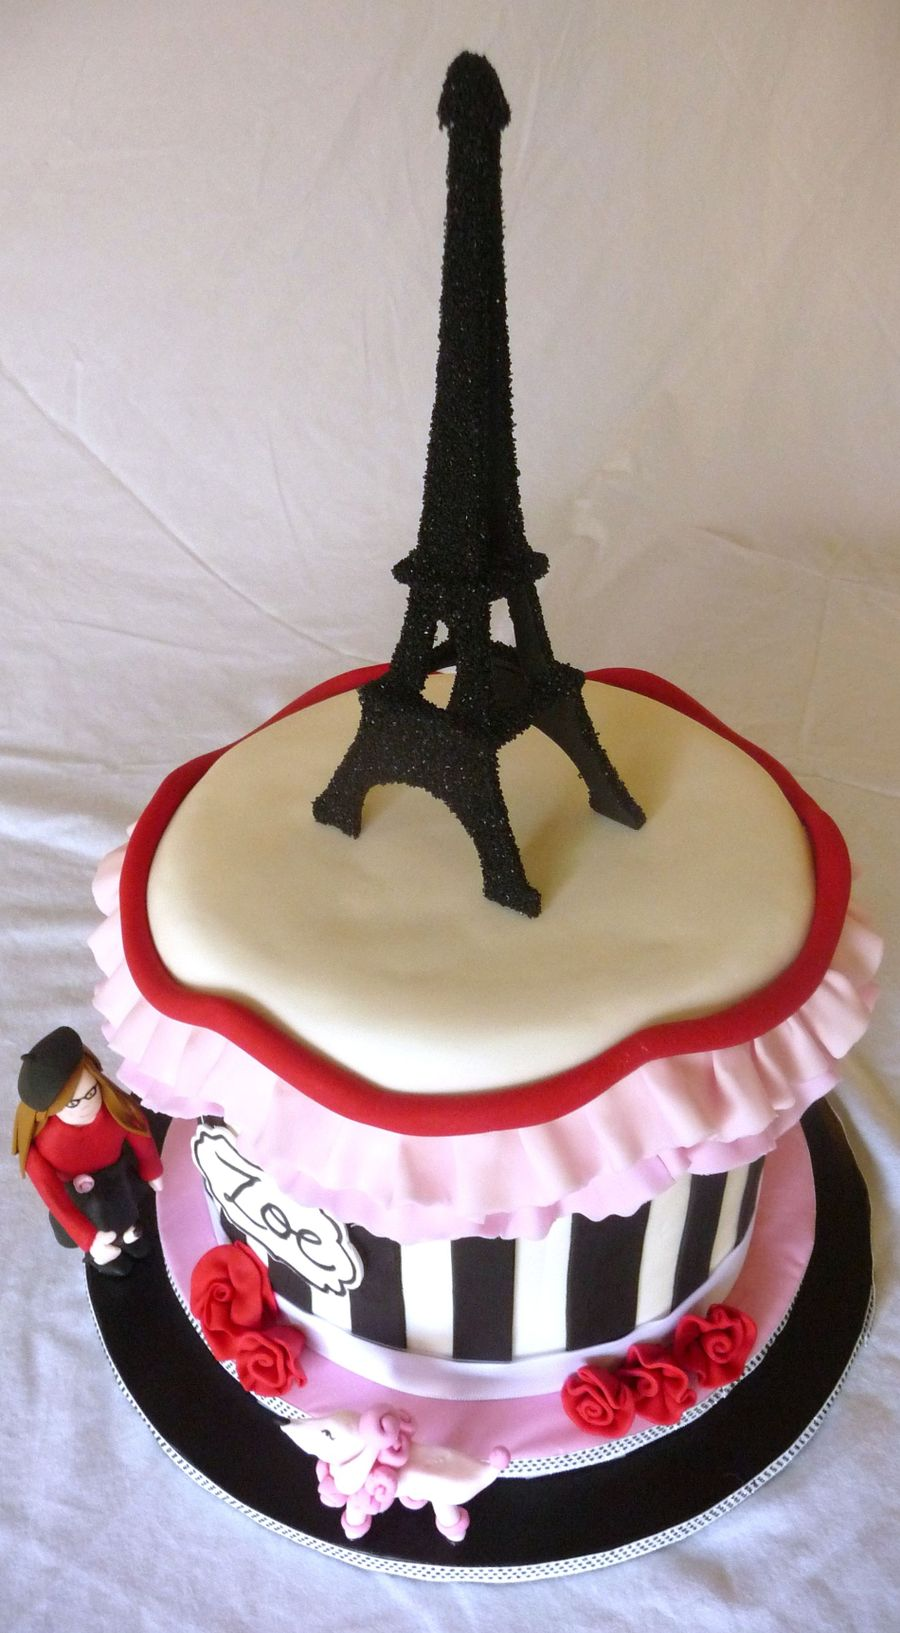 Cake Images With Name Pari : Paris-Themed Cake - CakeCentral.com